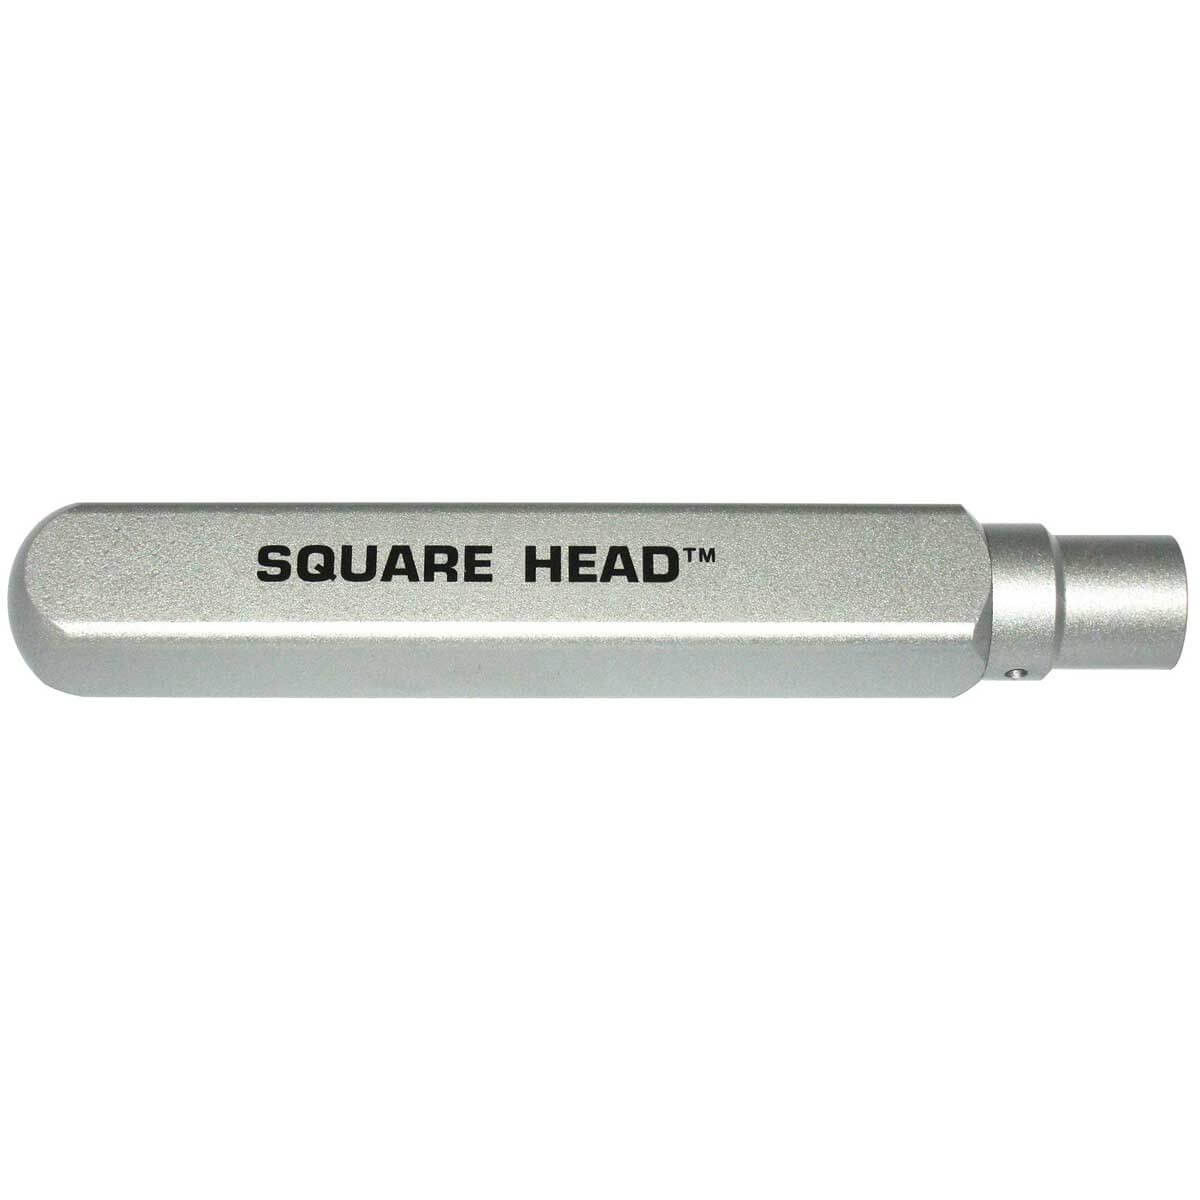 Wyco Square Heads electric Vibrator